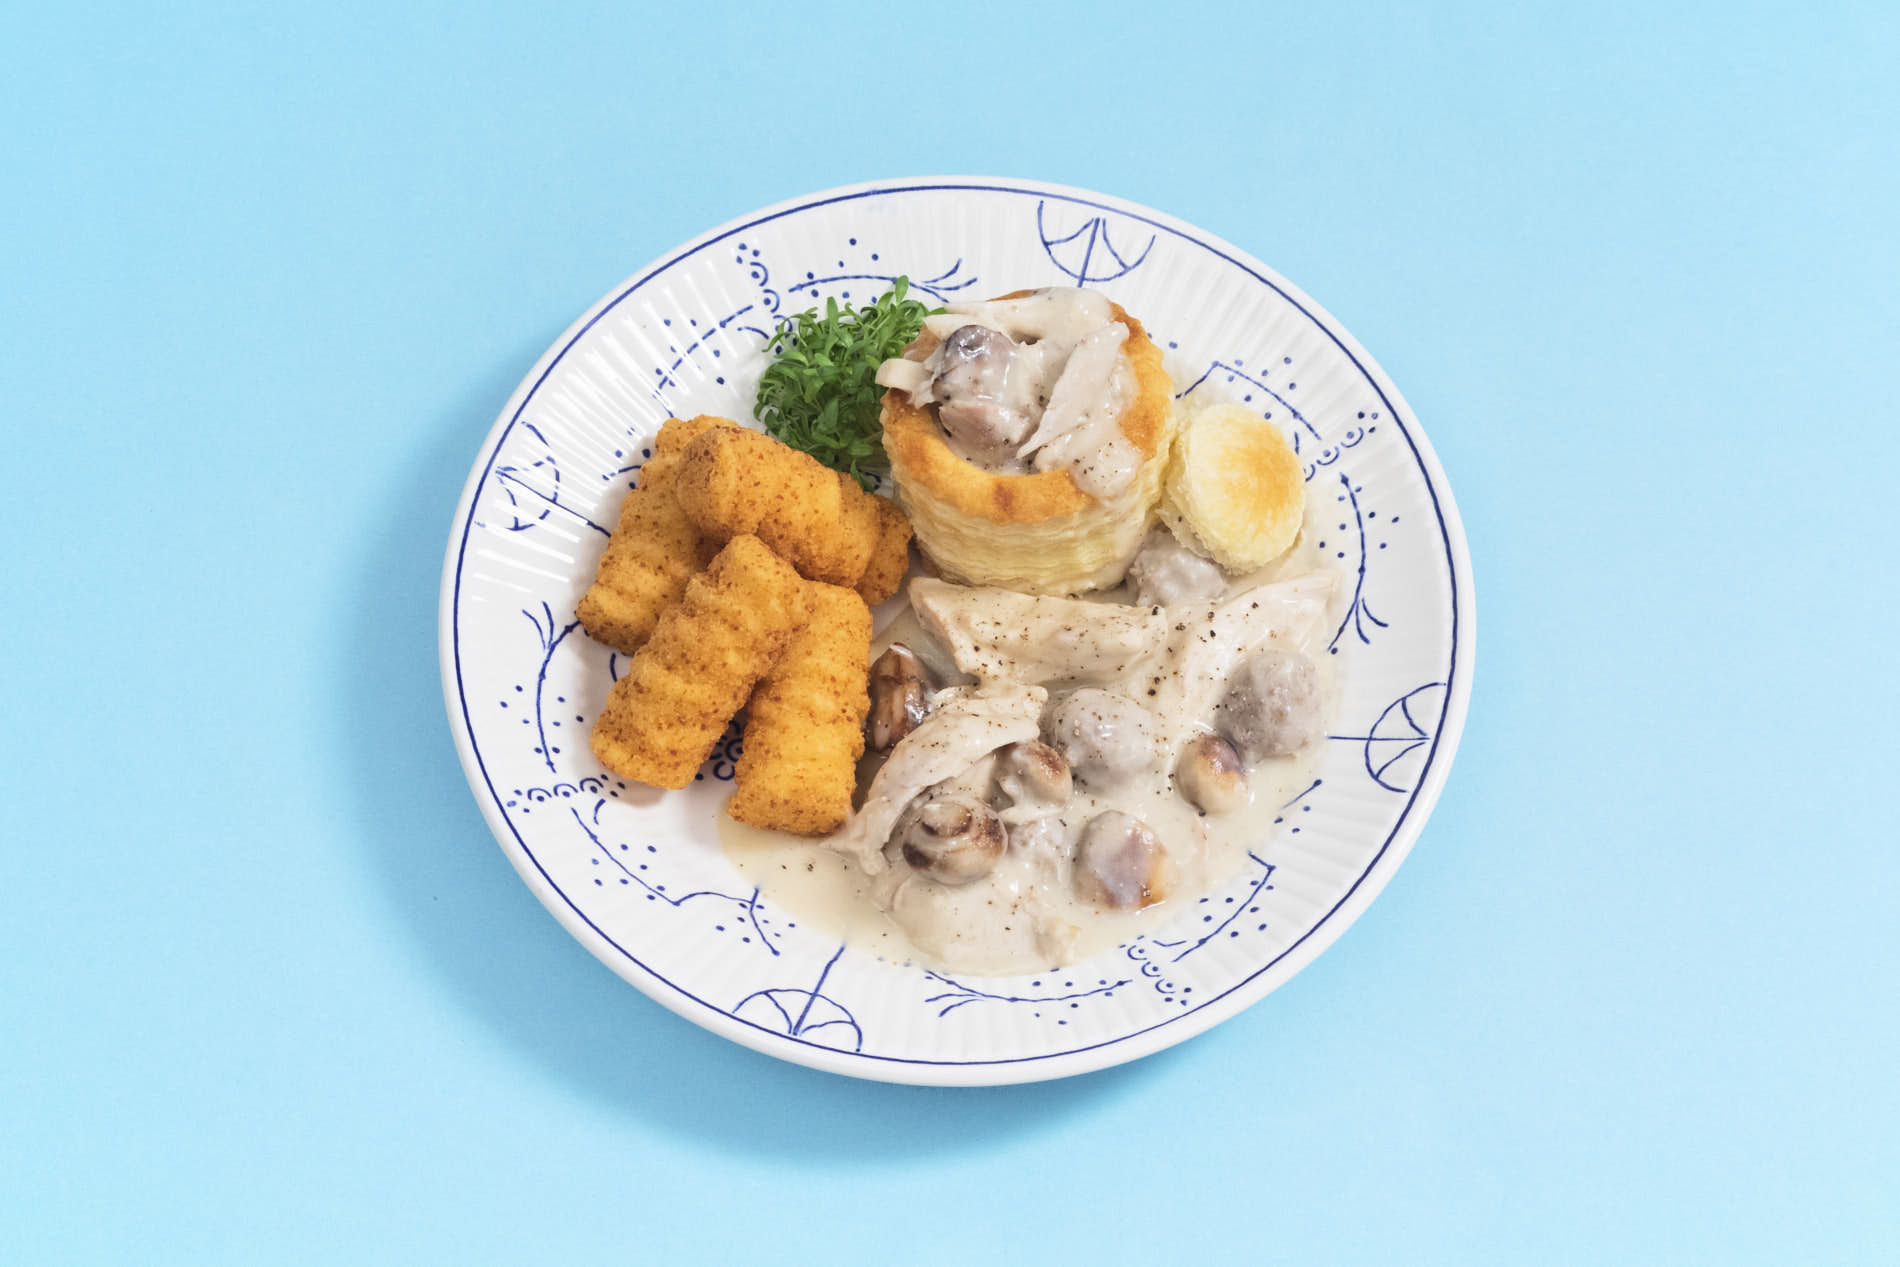 oldschool style plate with vol-au-vent and croquettes